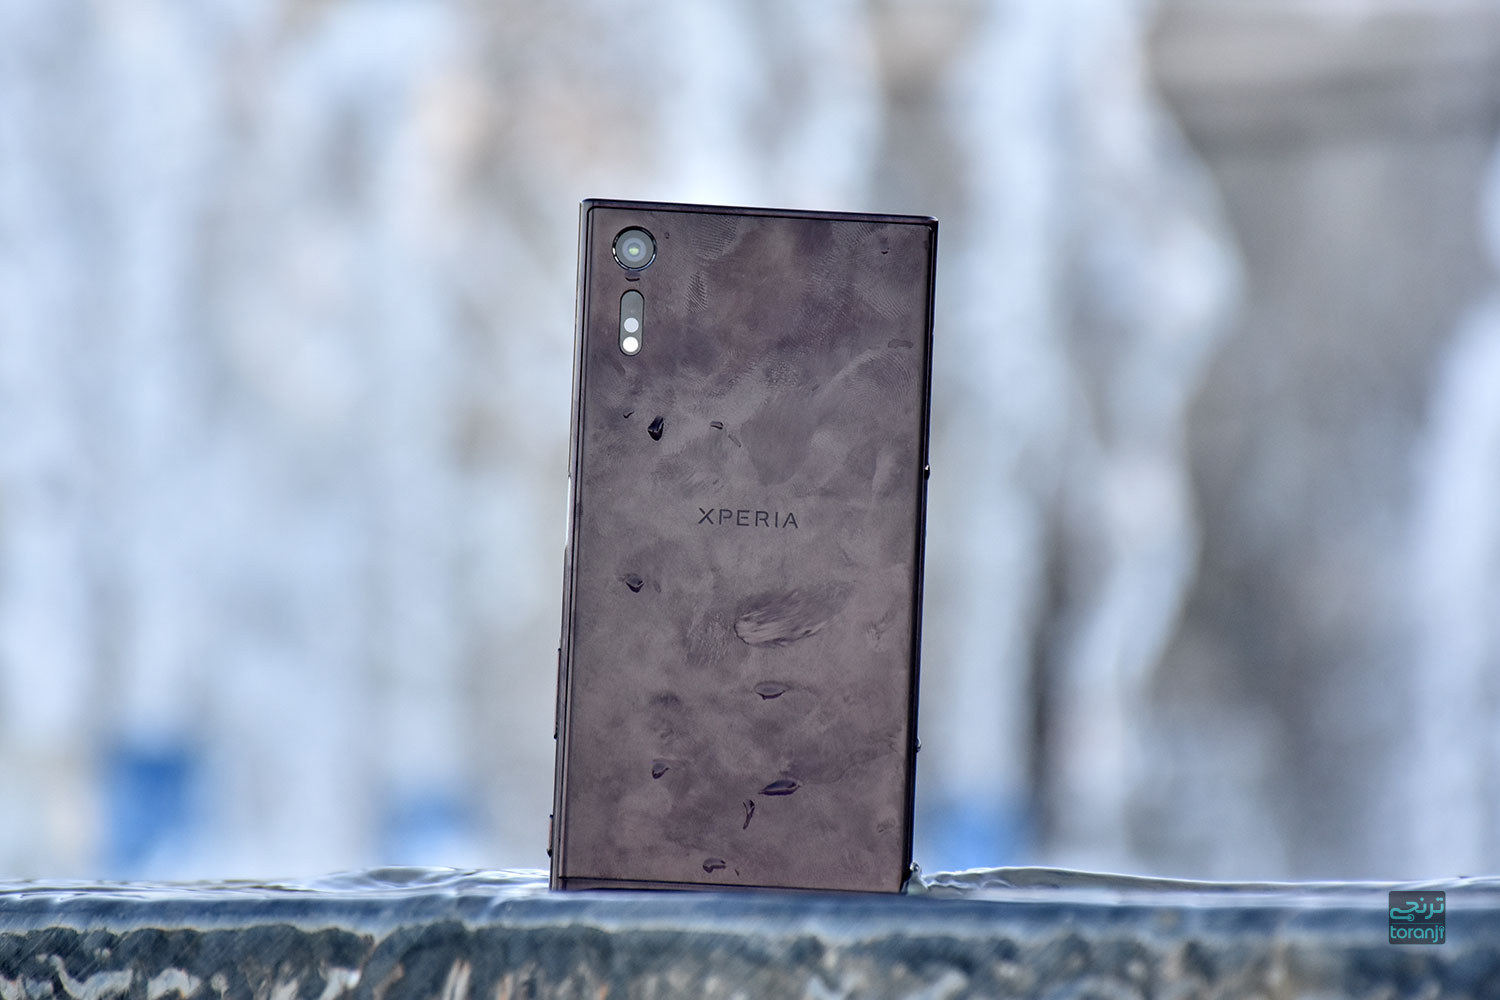 xperia-xz-review-13